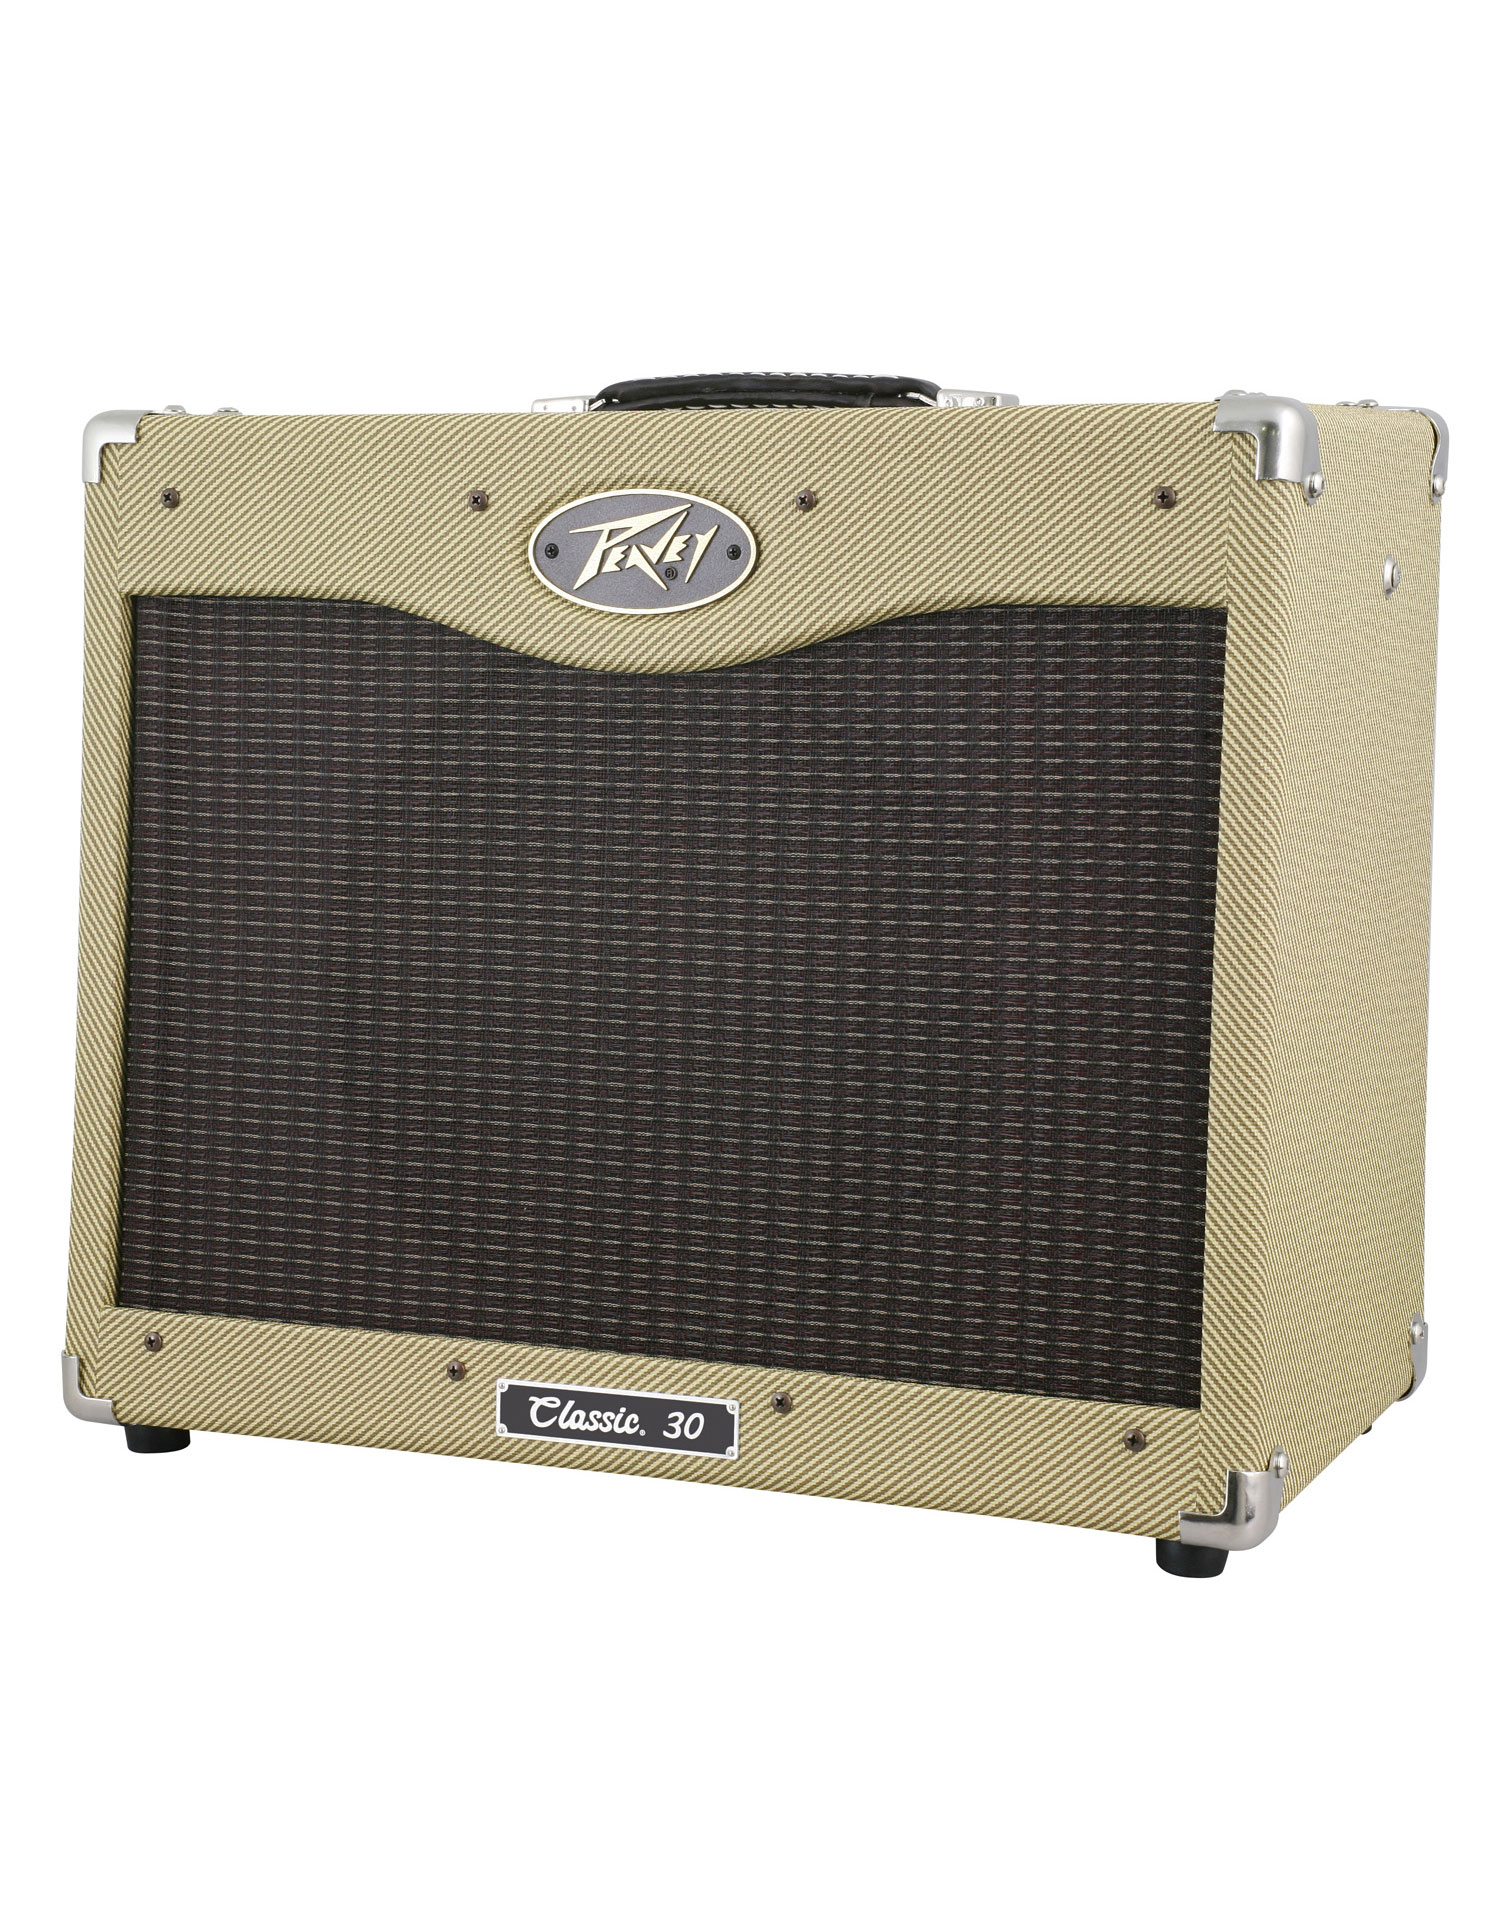 the peavey classic 30 is built for the hardworkig musician. Black Bedroom Furniture Sets. Home Design Ideas